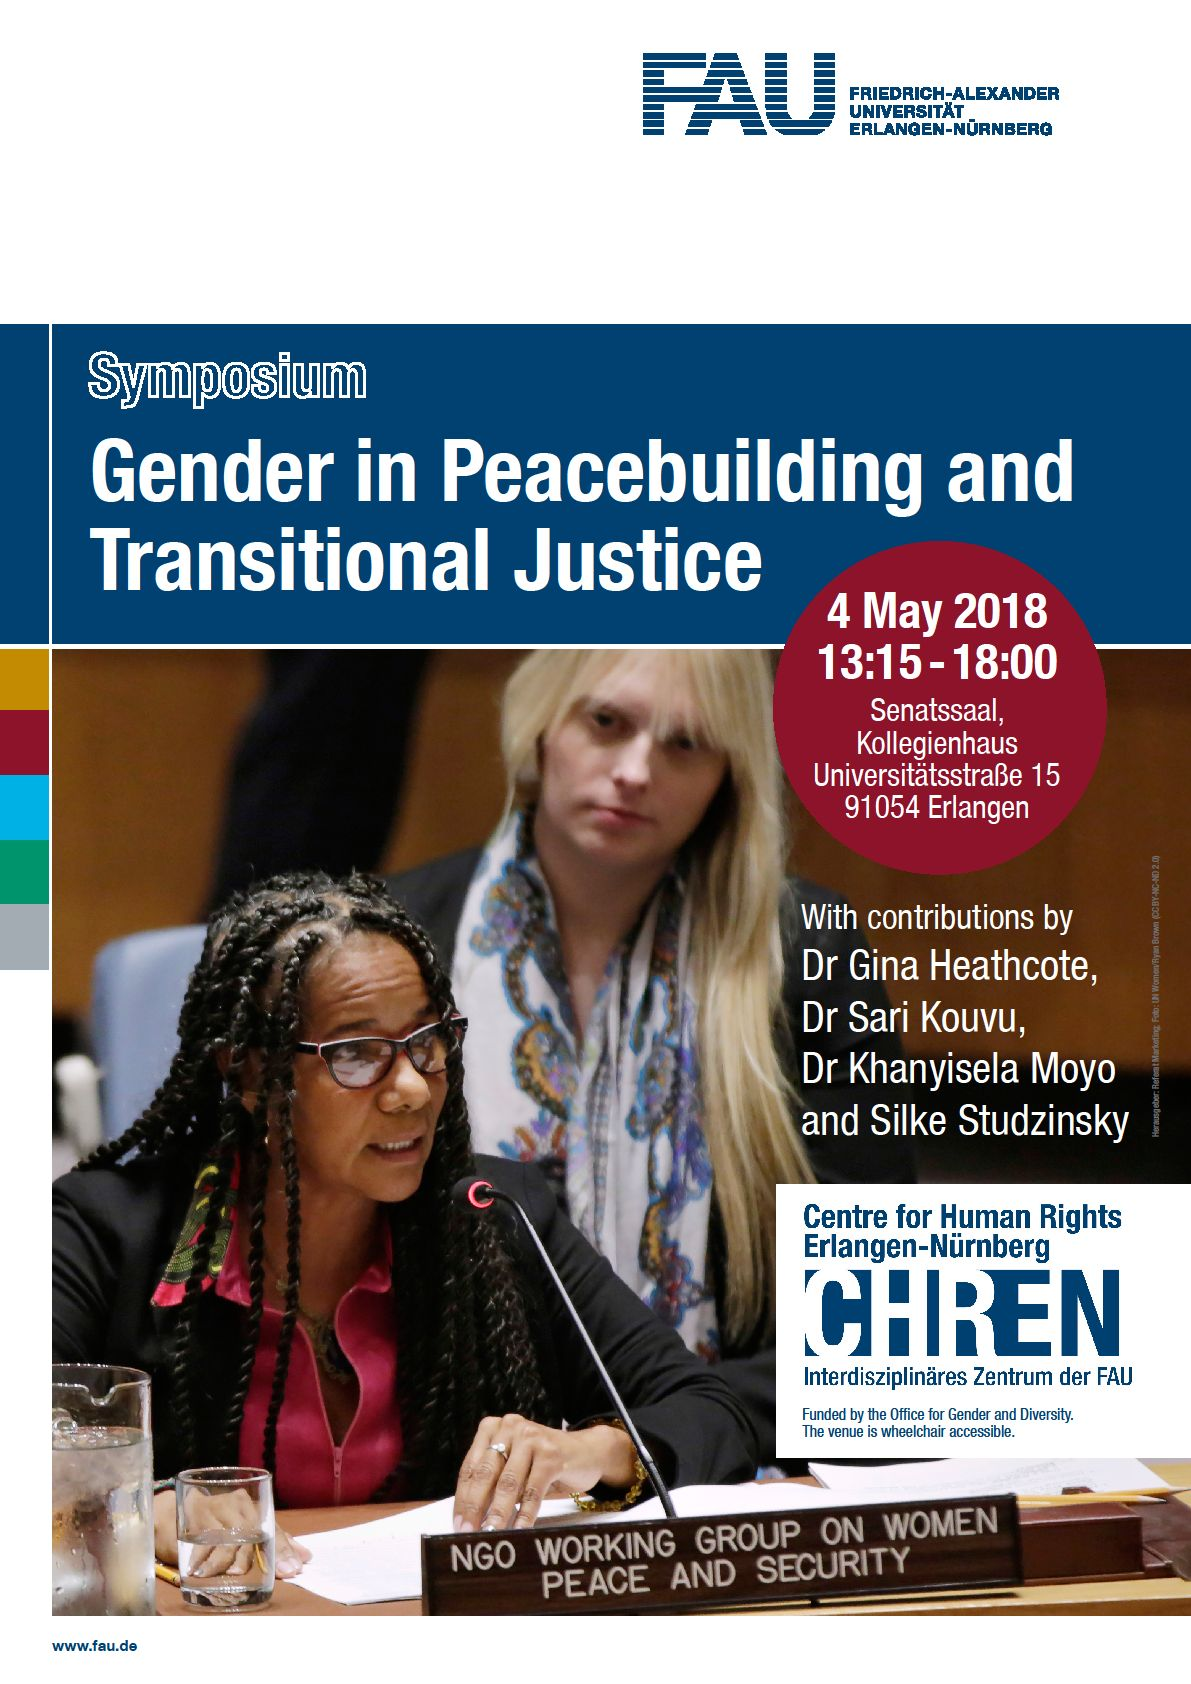 poster announcing the symposium on Gender in Peacebuilding and Transitional Justice